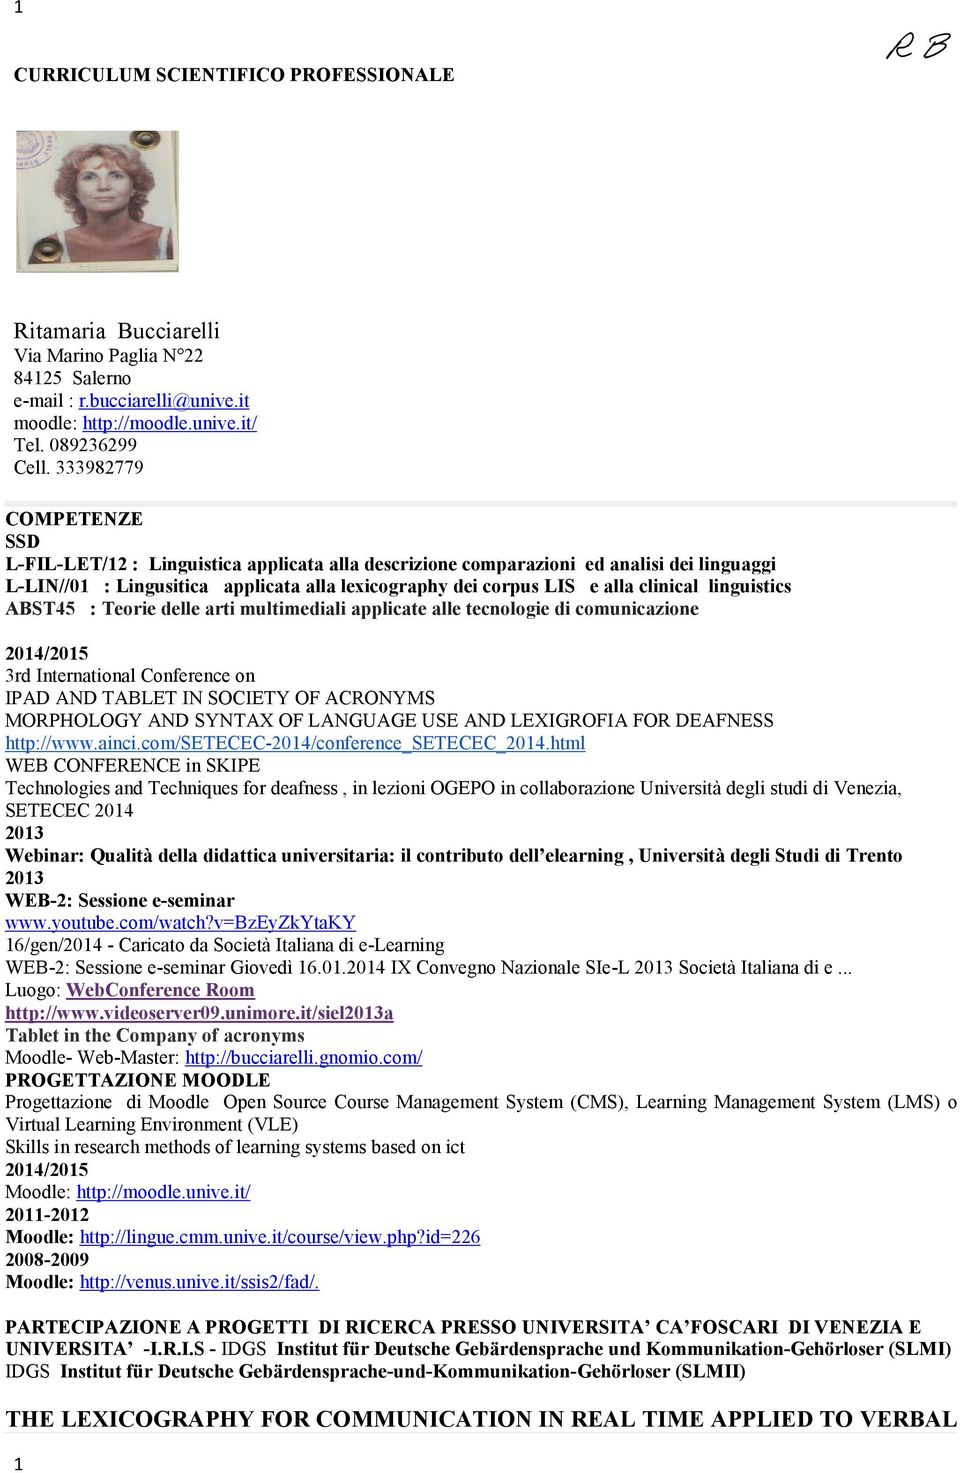 linguistics ABST45 : Teorie delle arti multimediali applicate alle tecnologie di comunicazione 2014/2015 3rd International Conference on IPAD AND TABLET IN SOCIETY OF ACRONYMS MORPHOLOGY AND SYNTAX